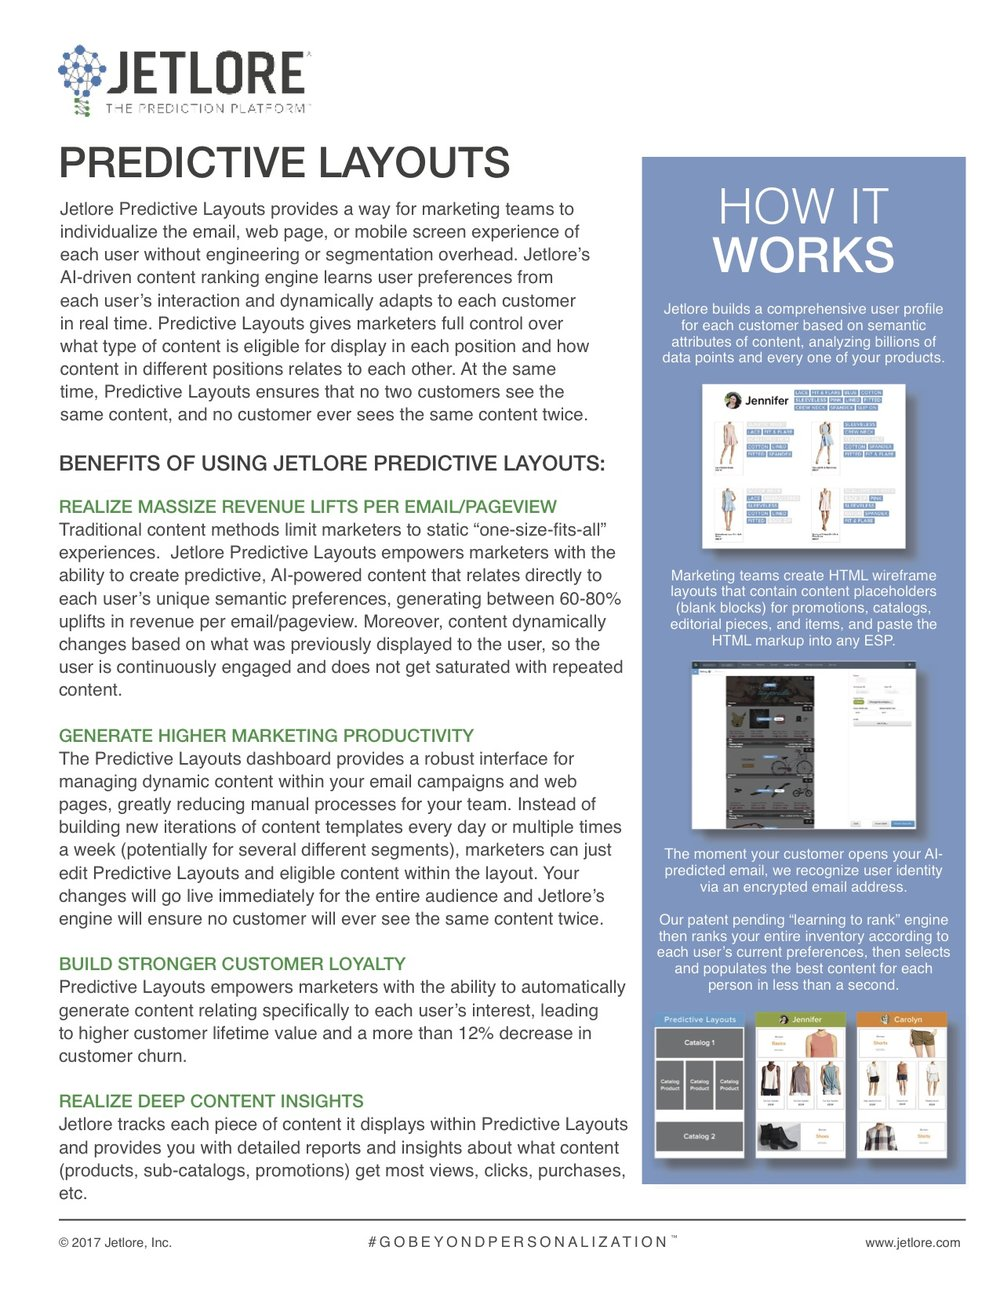 Jetlore predictive layouts datasheet, describing how our AI technology helps create an individualized experience for consumers in email, web, and mobile channels.